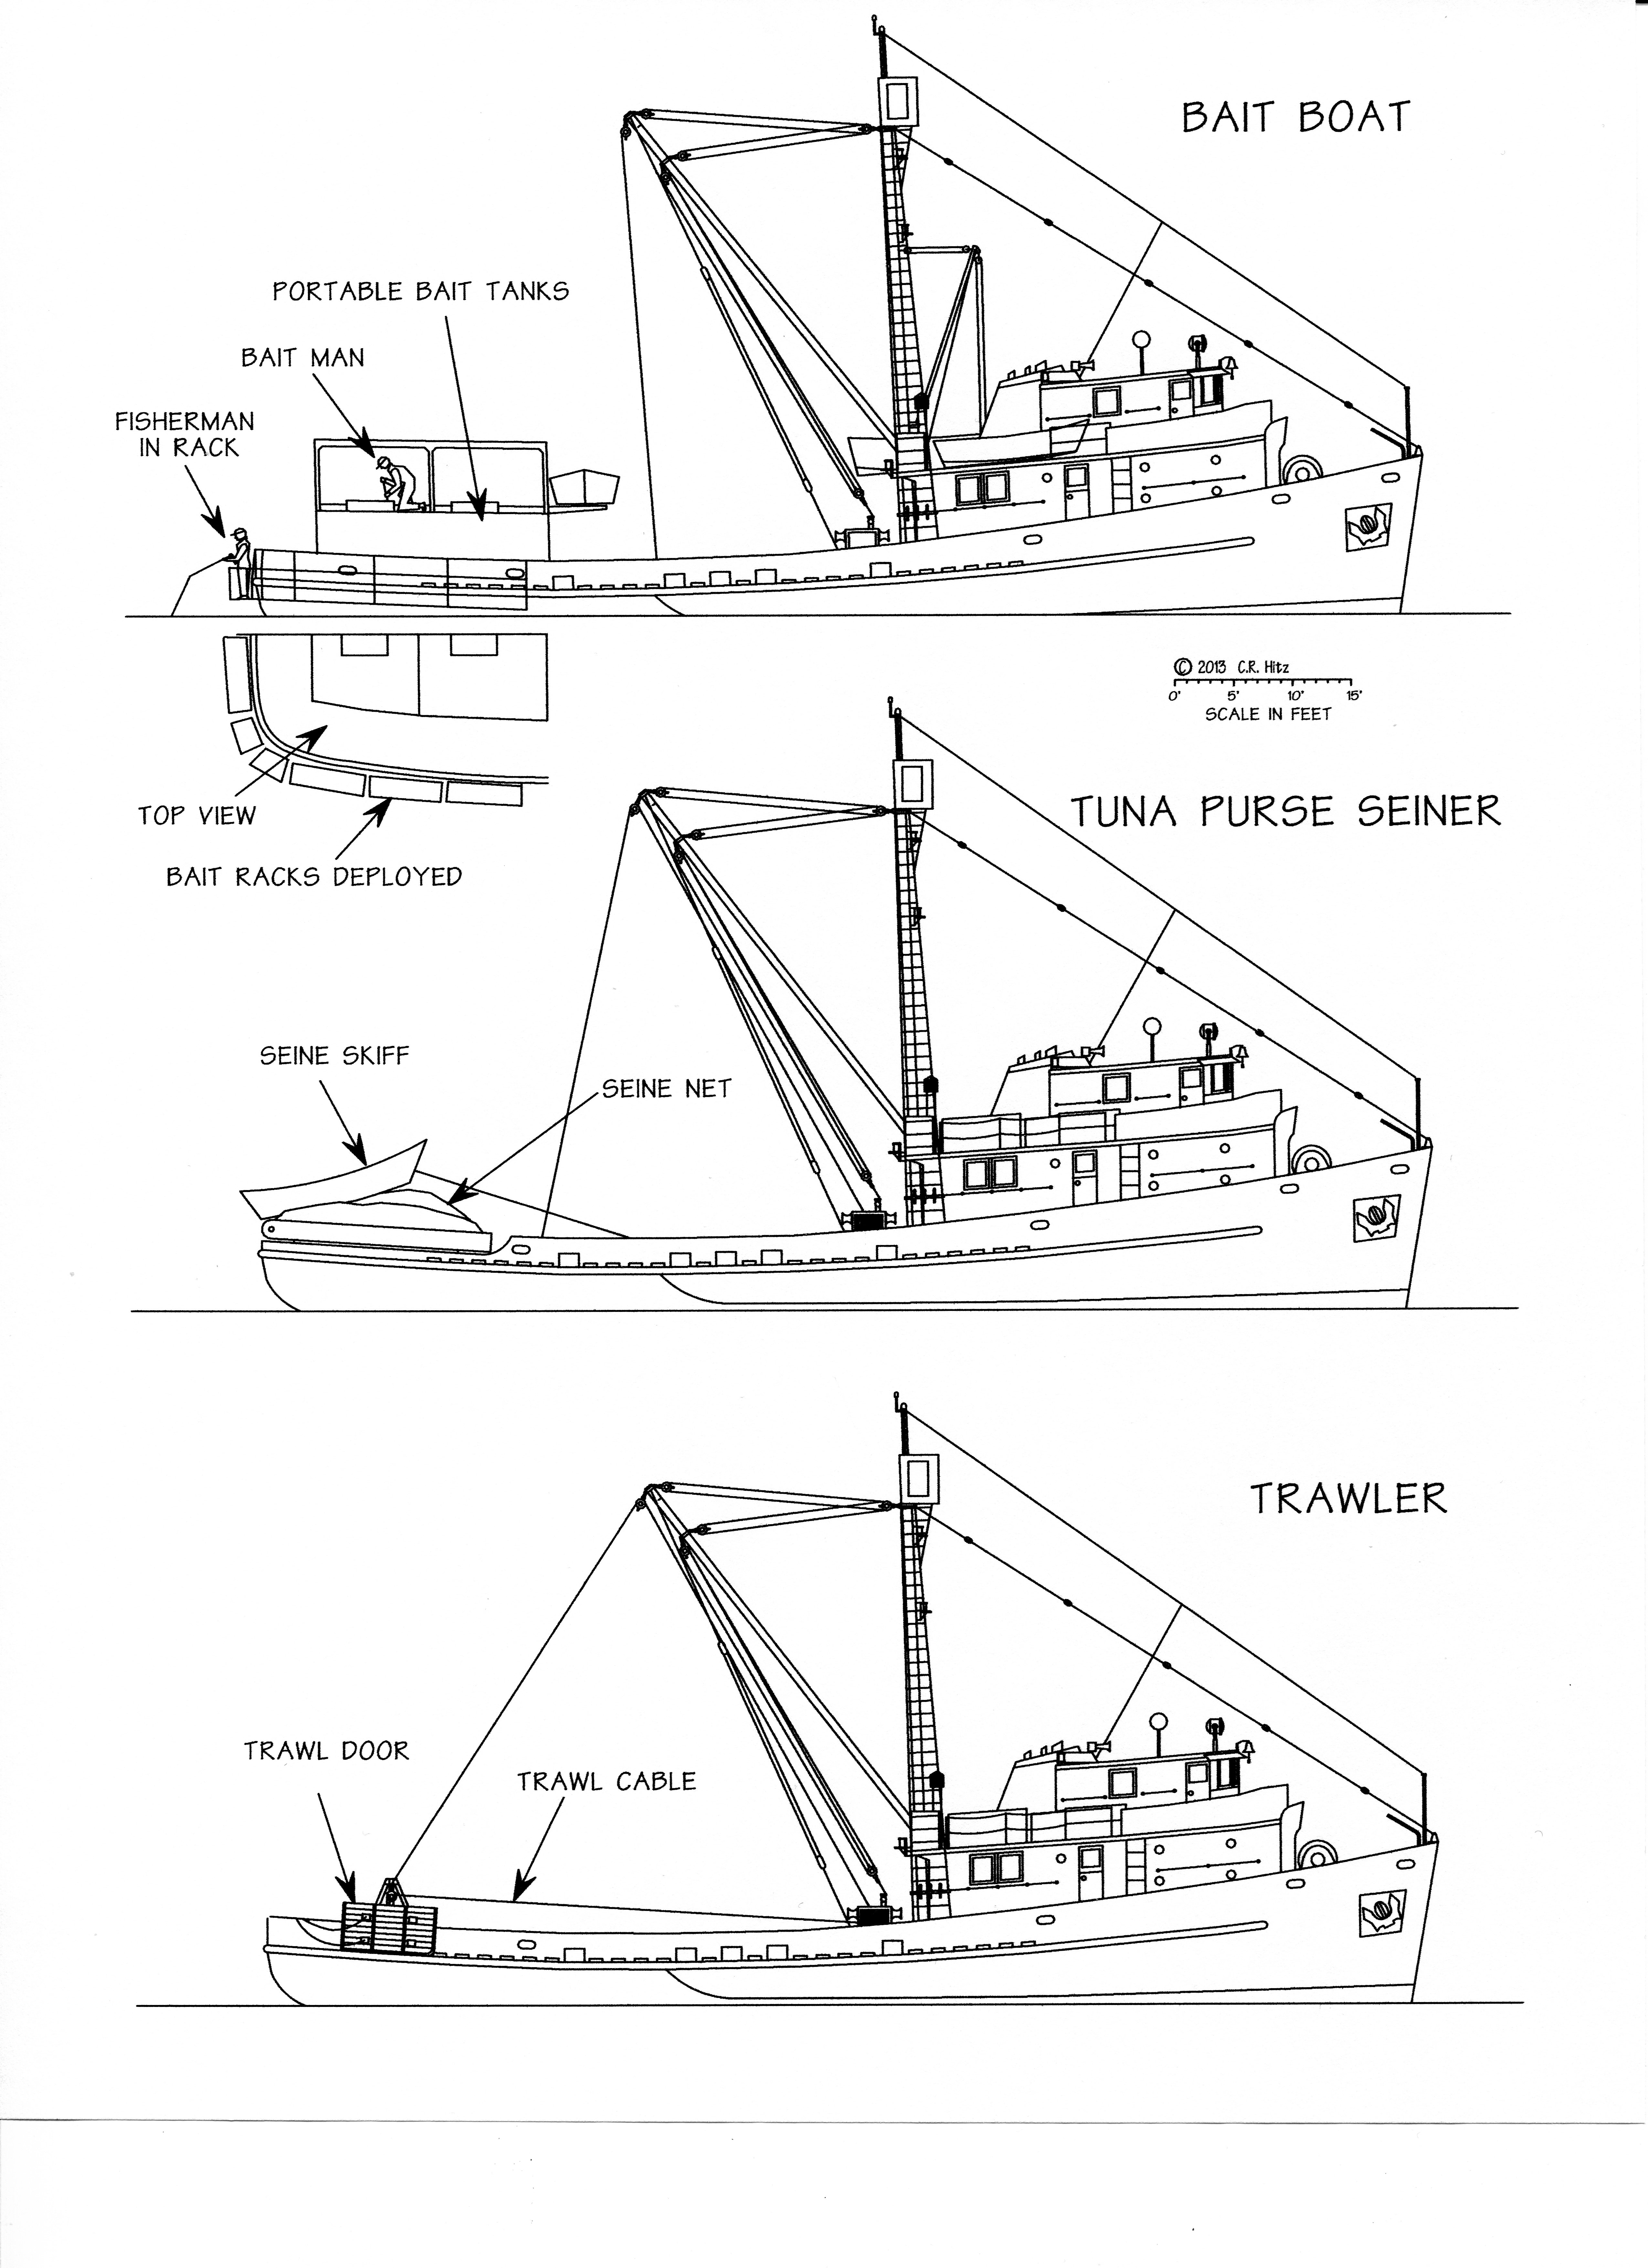 The Pacific Explorer And Its Four Fishing Vessels